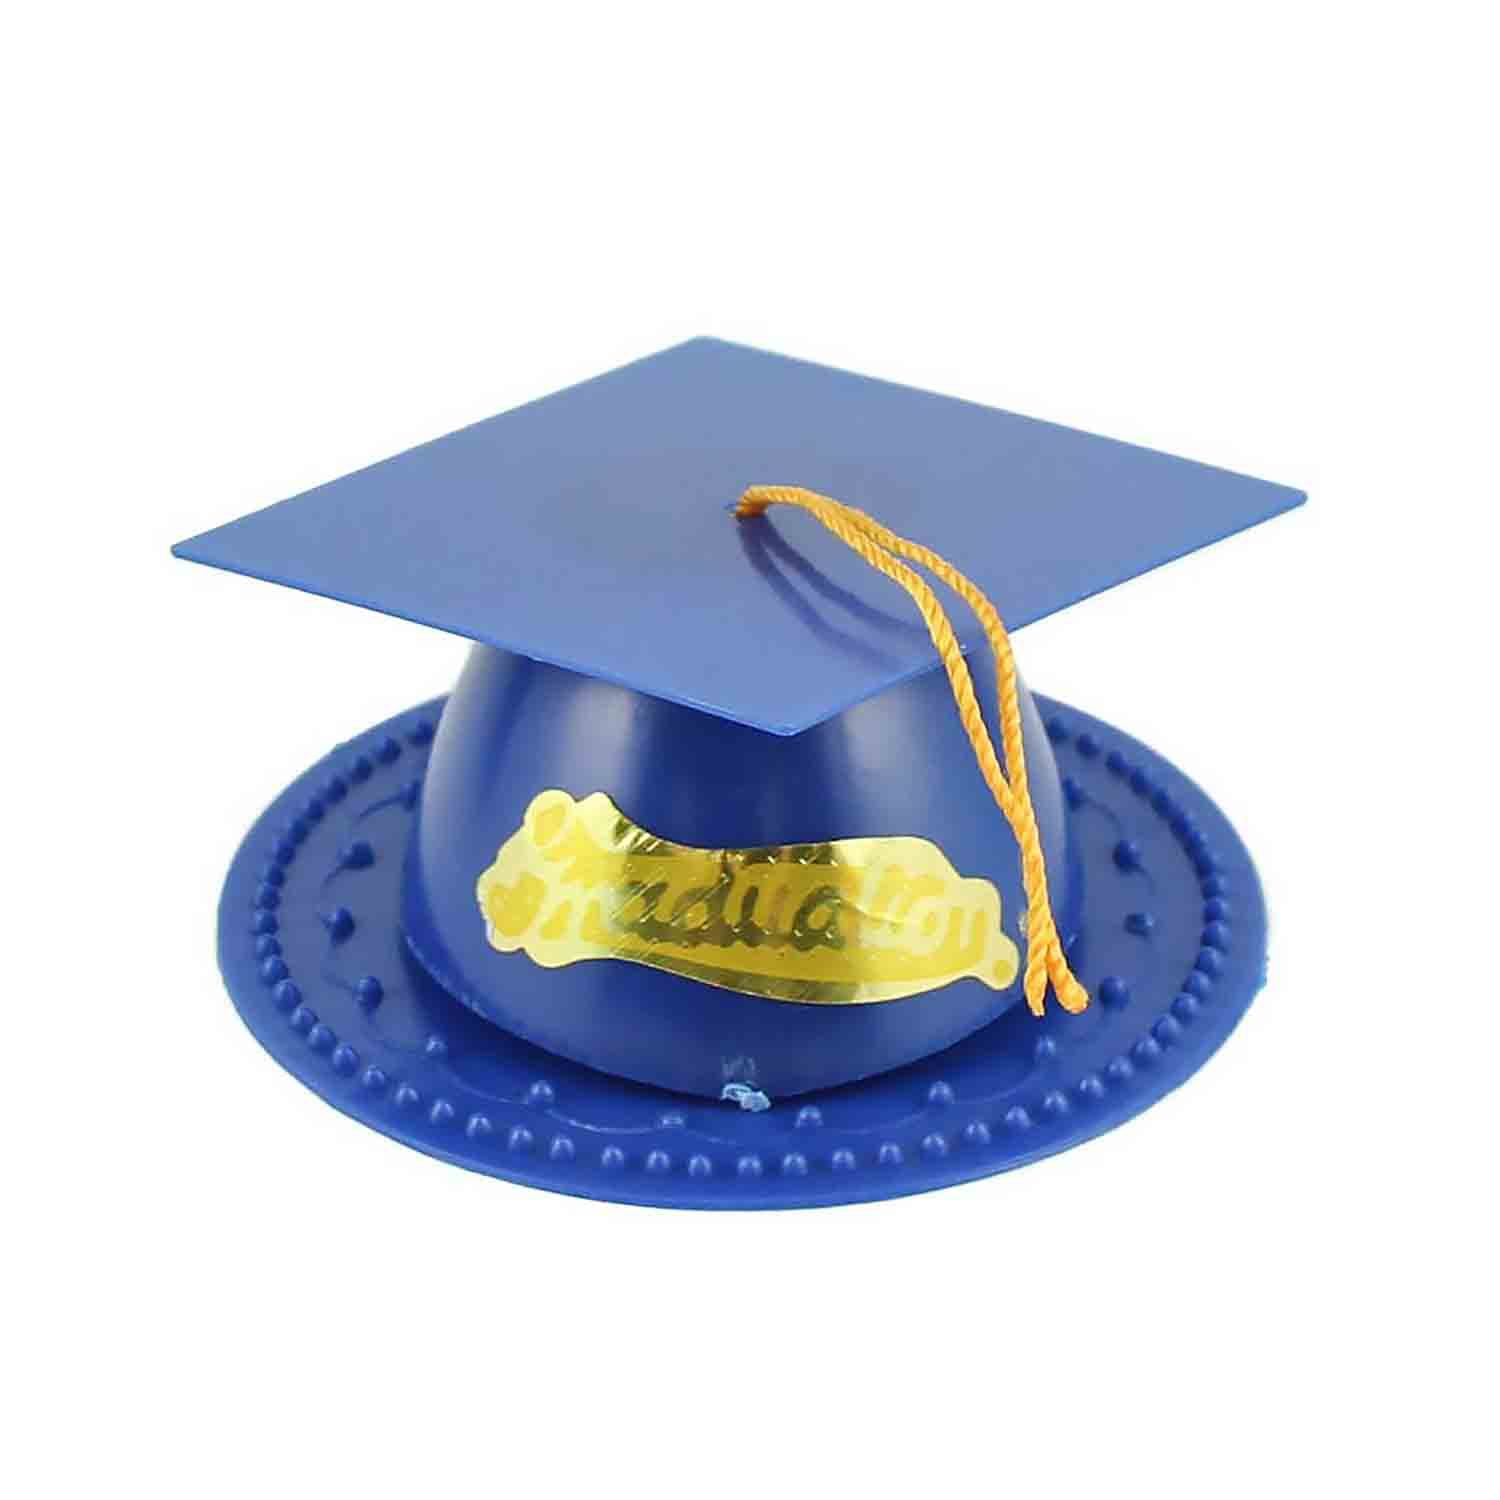 Blue Graduation Cap Topper